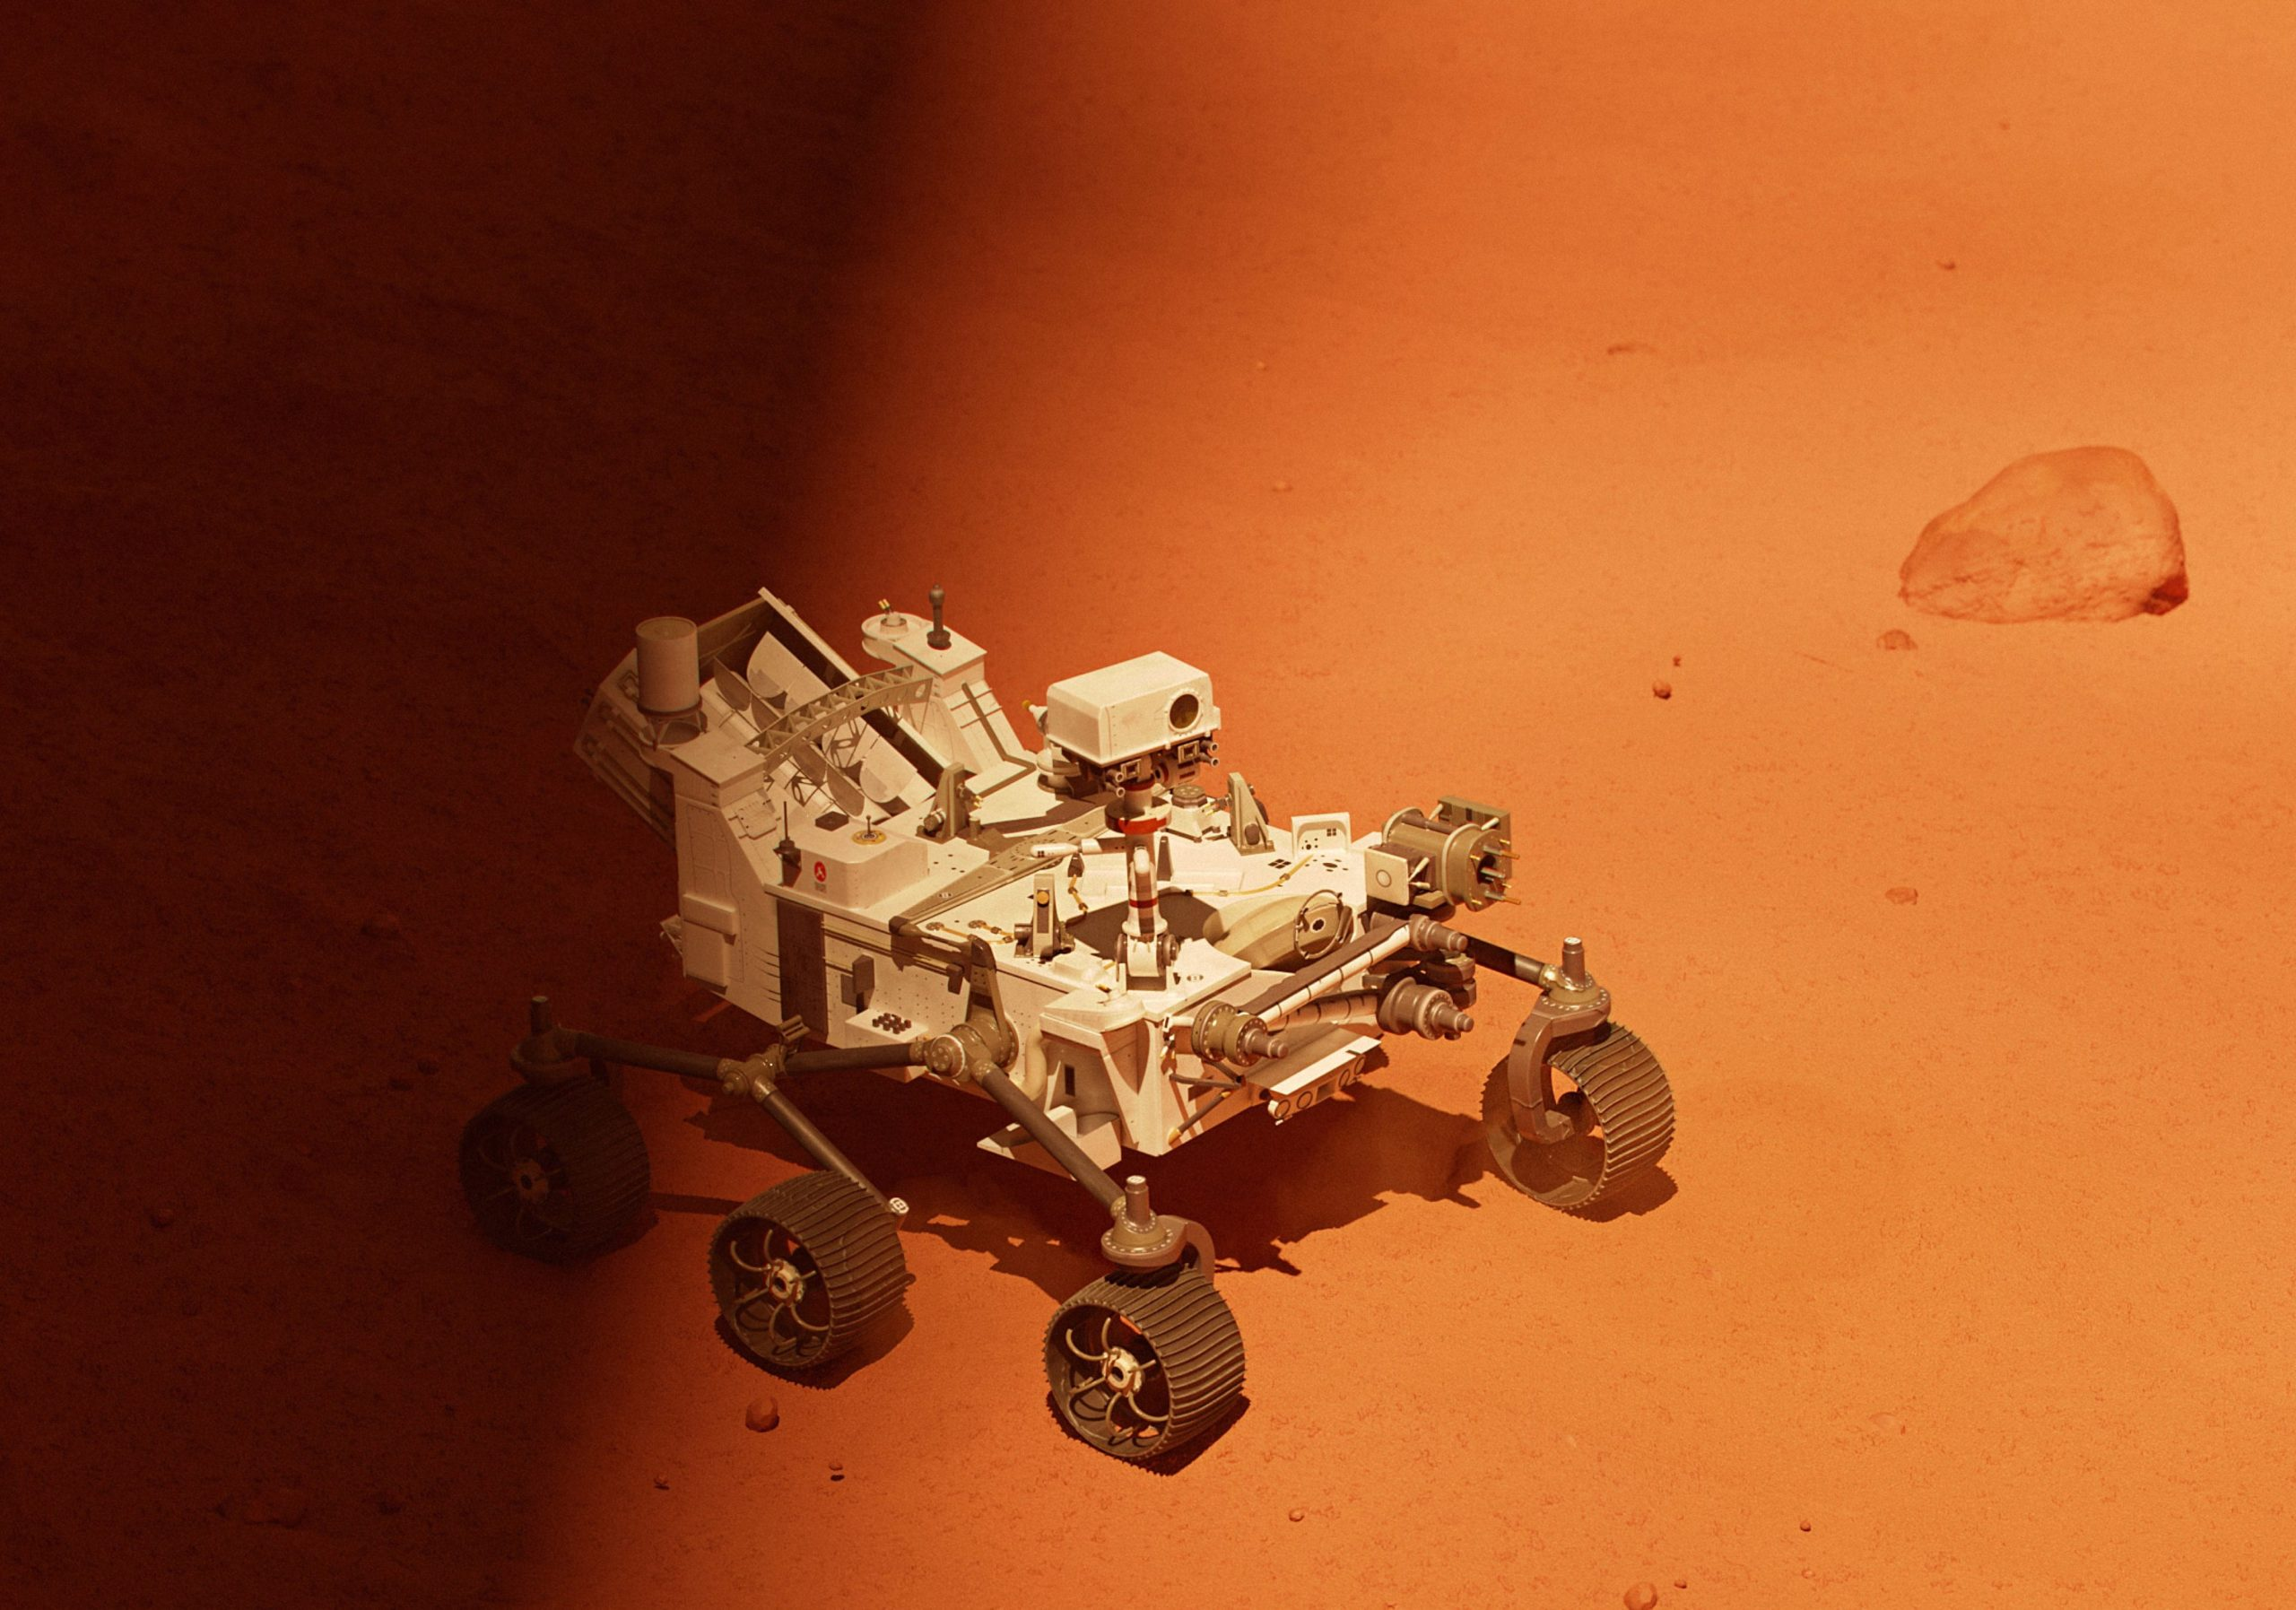 Mars 2020 Rover image by House of van Schneider